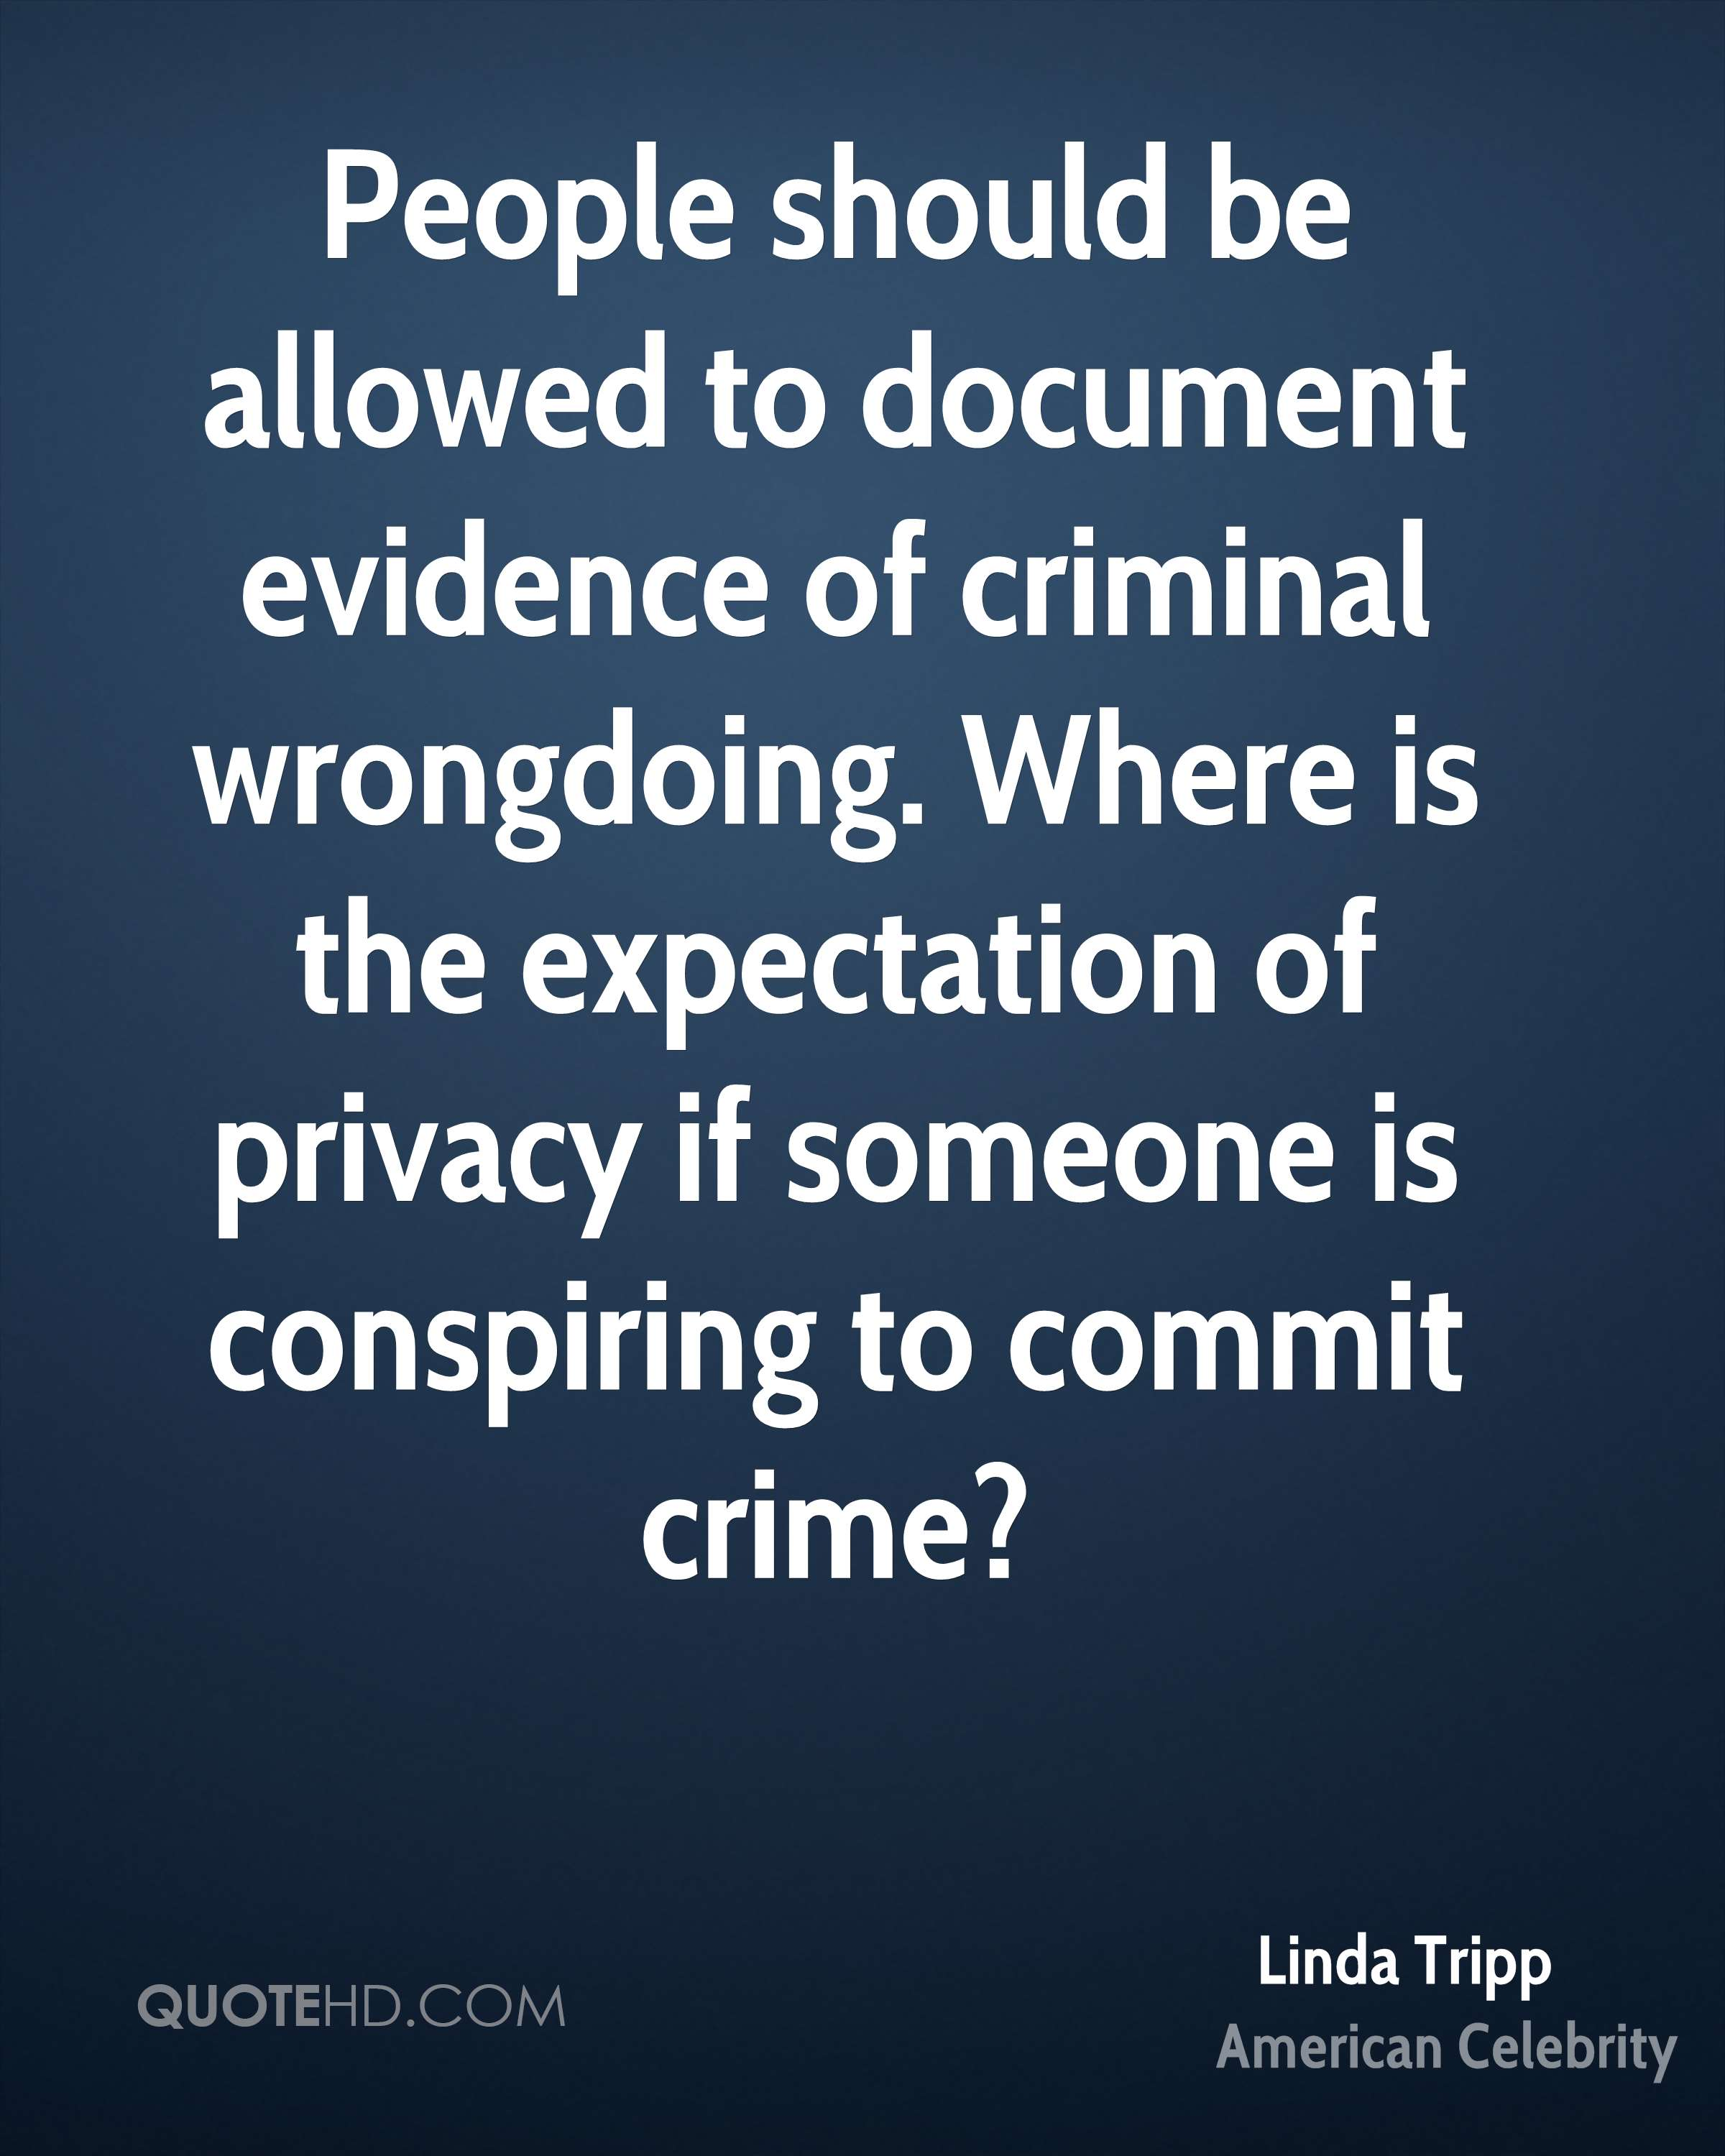 People should be allowed to document evidence of criminal wrongdoing. Where is the expectation of privacy if someone is conspiring to commit crime?